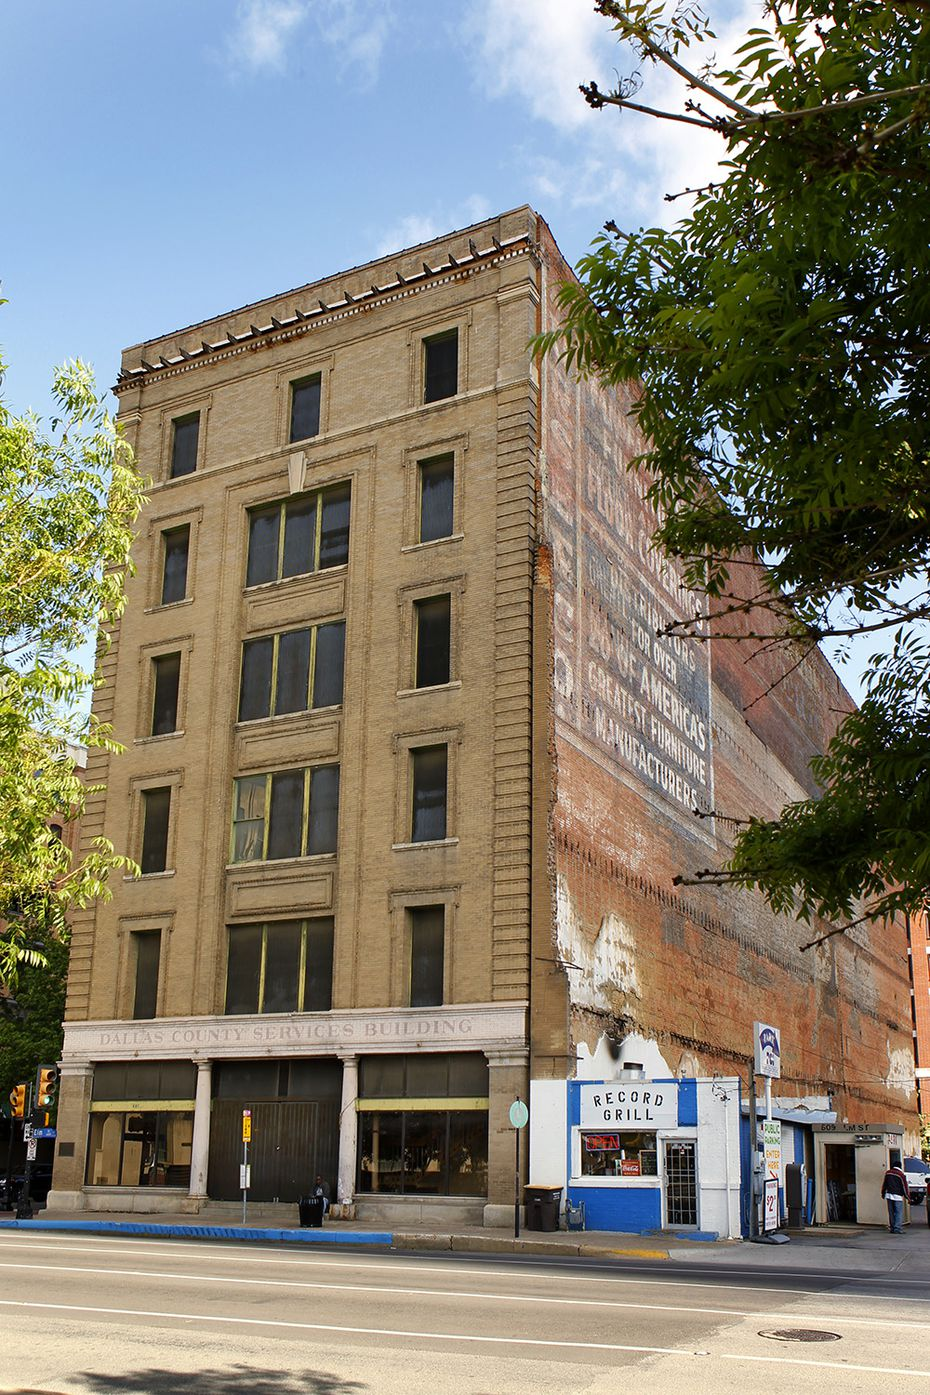 The Purse Building at 601 Elm Street.